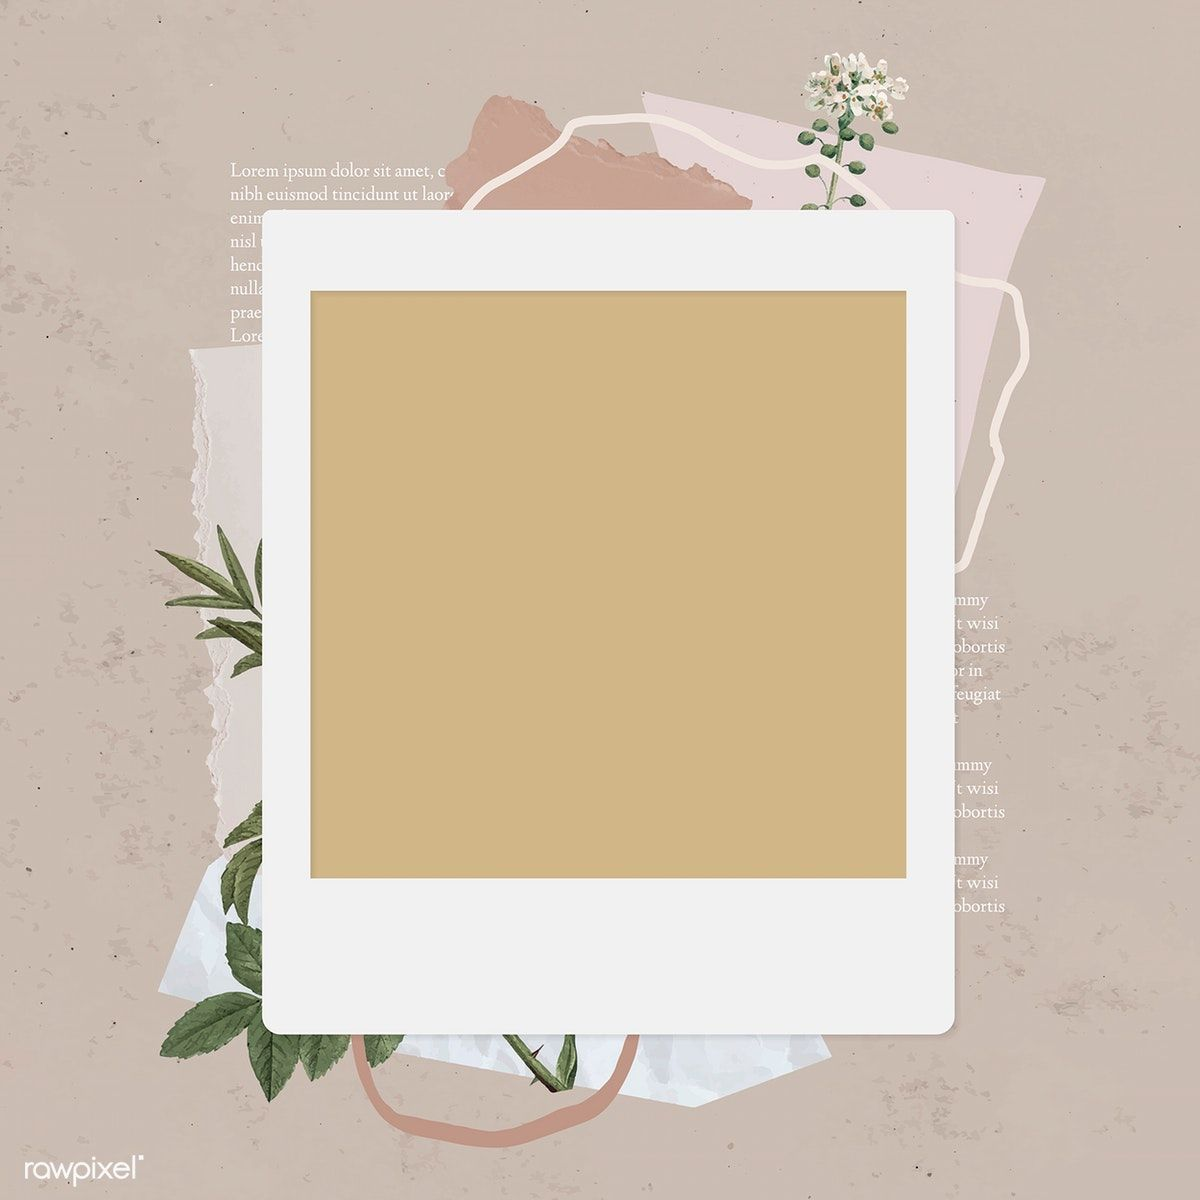 Download Premium Illustration Of Blank Collage Photo Frame